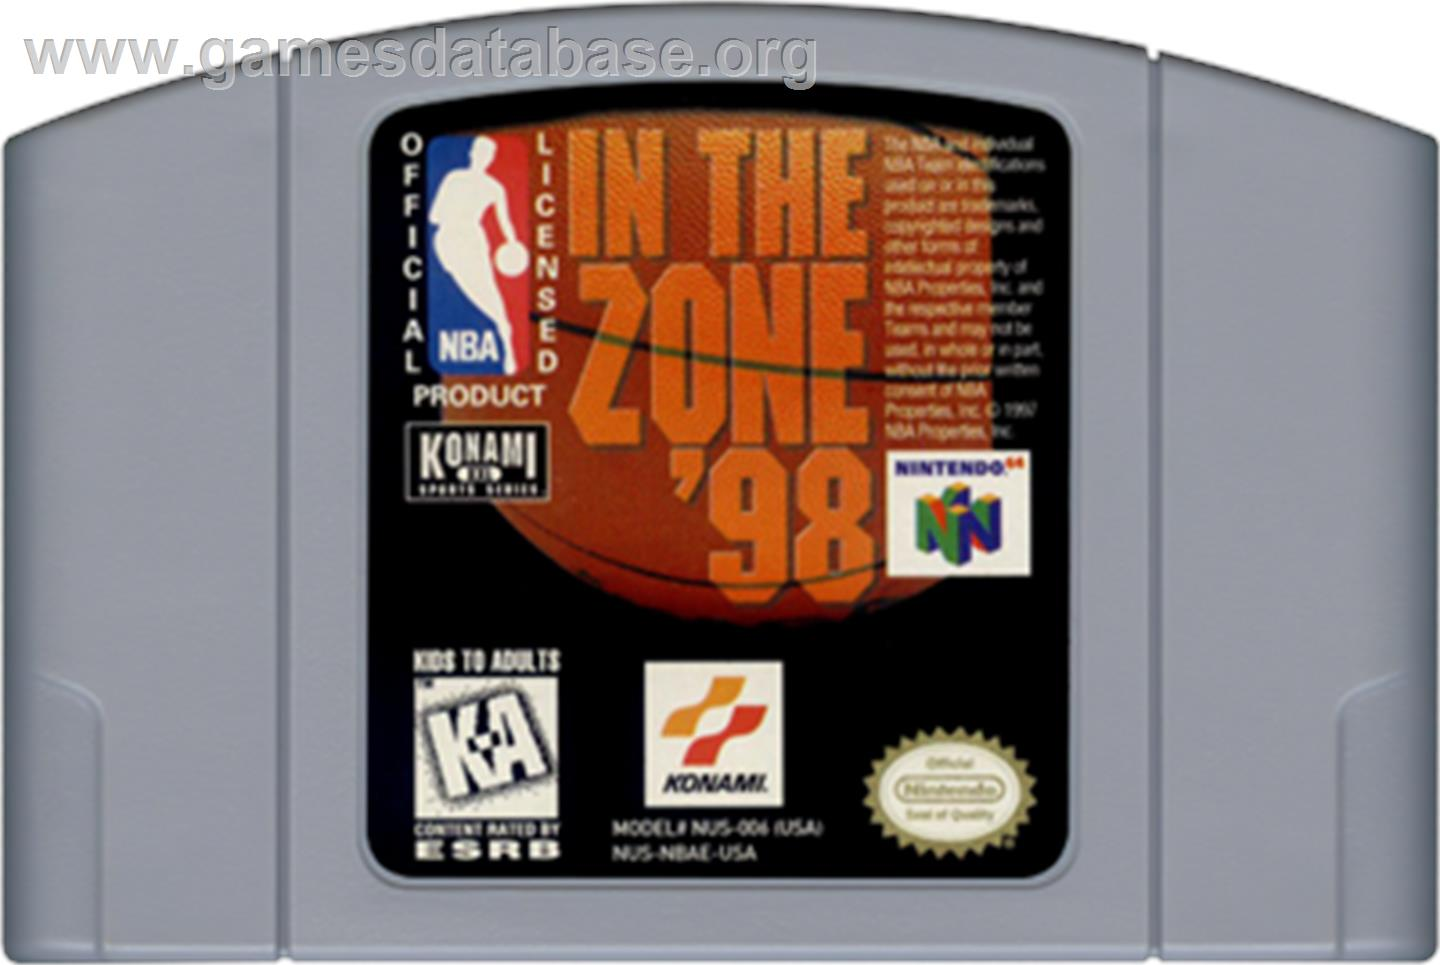 nba in the zone 98 download